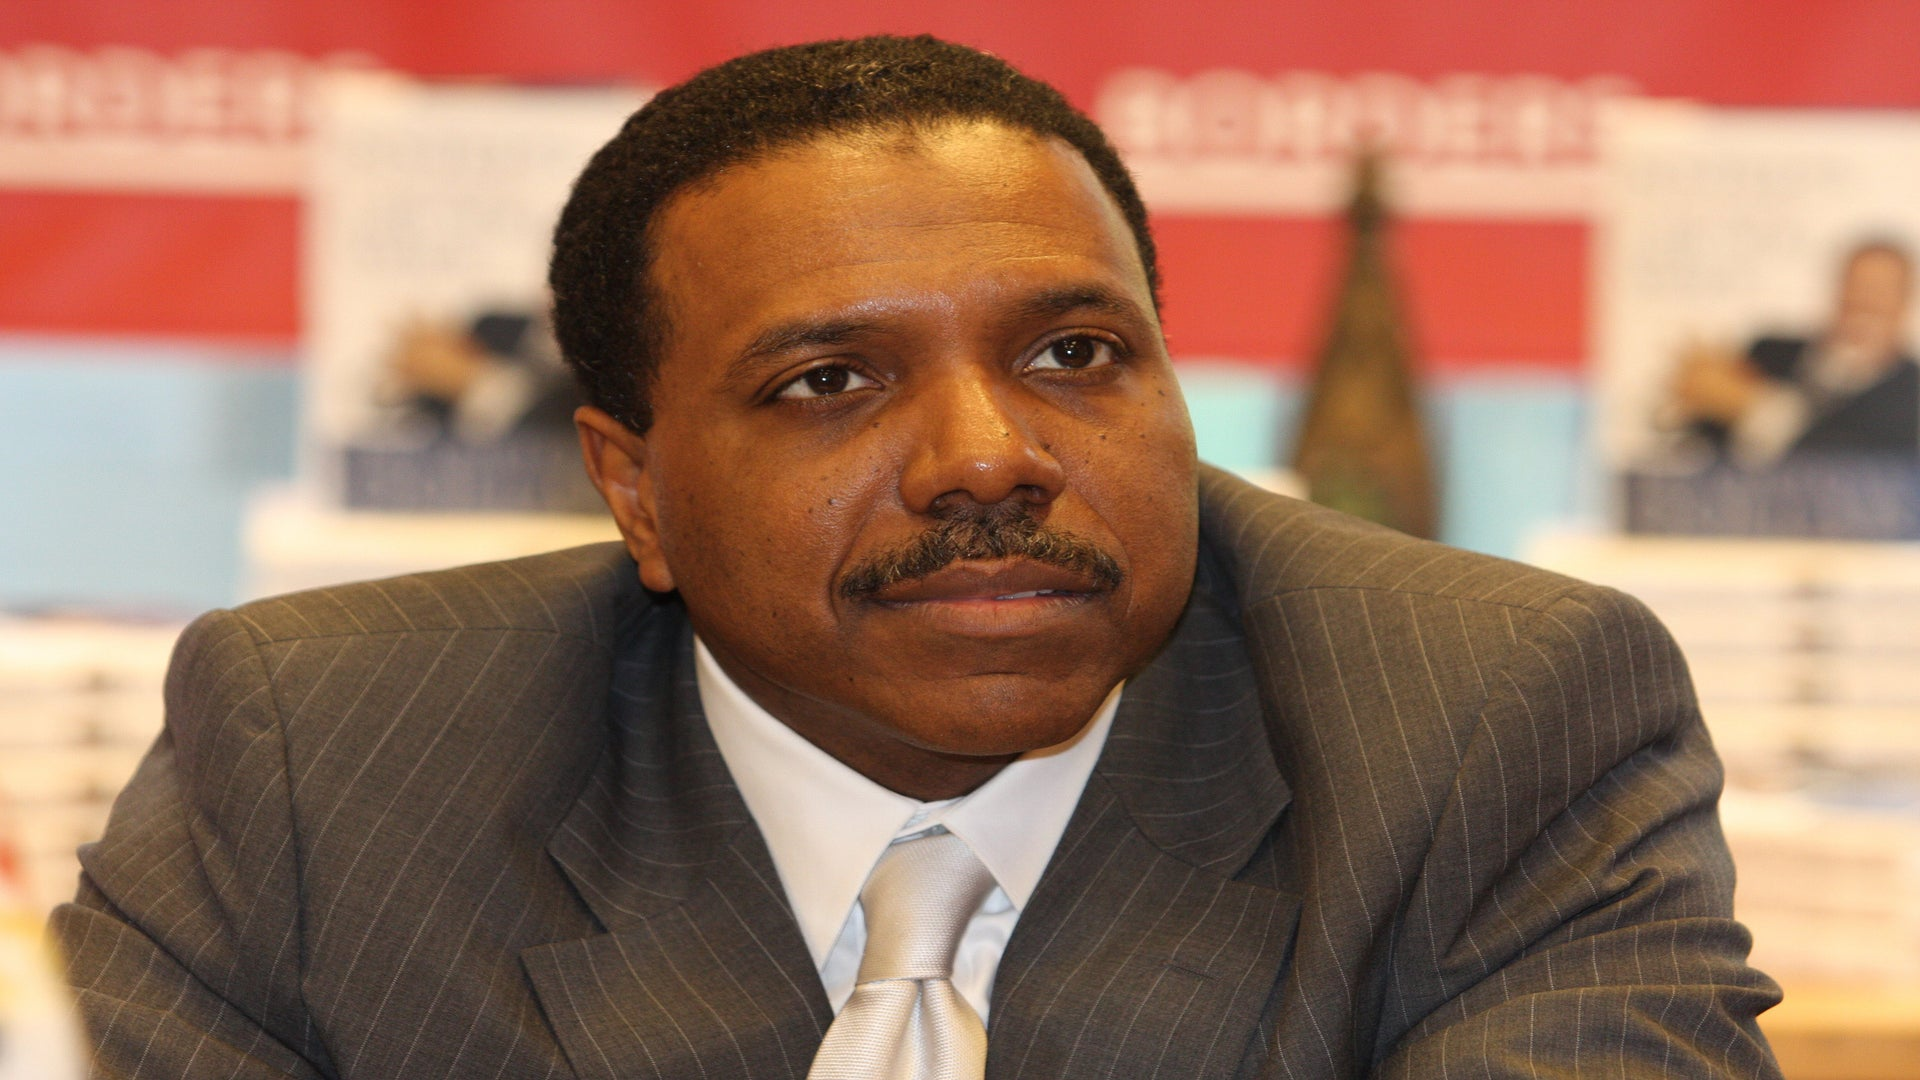 Megachurch Pastor Creflo Dollar Arrested for Assaulting Daughter